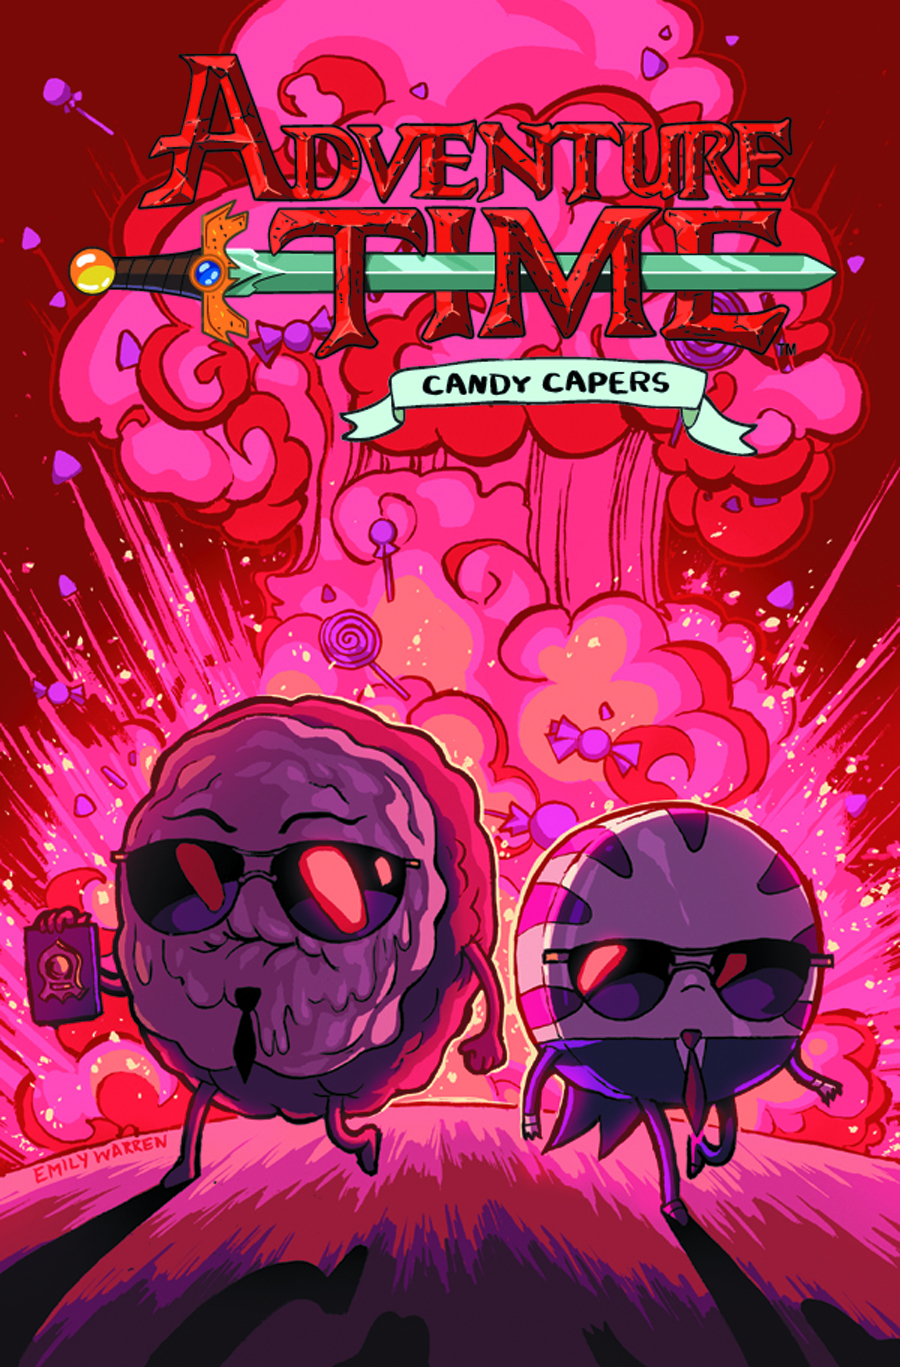 ADVENTURE TIME CANDY CAPERS #6